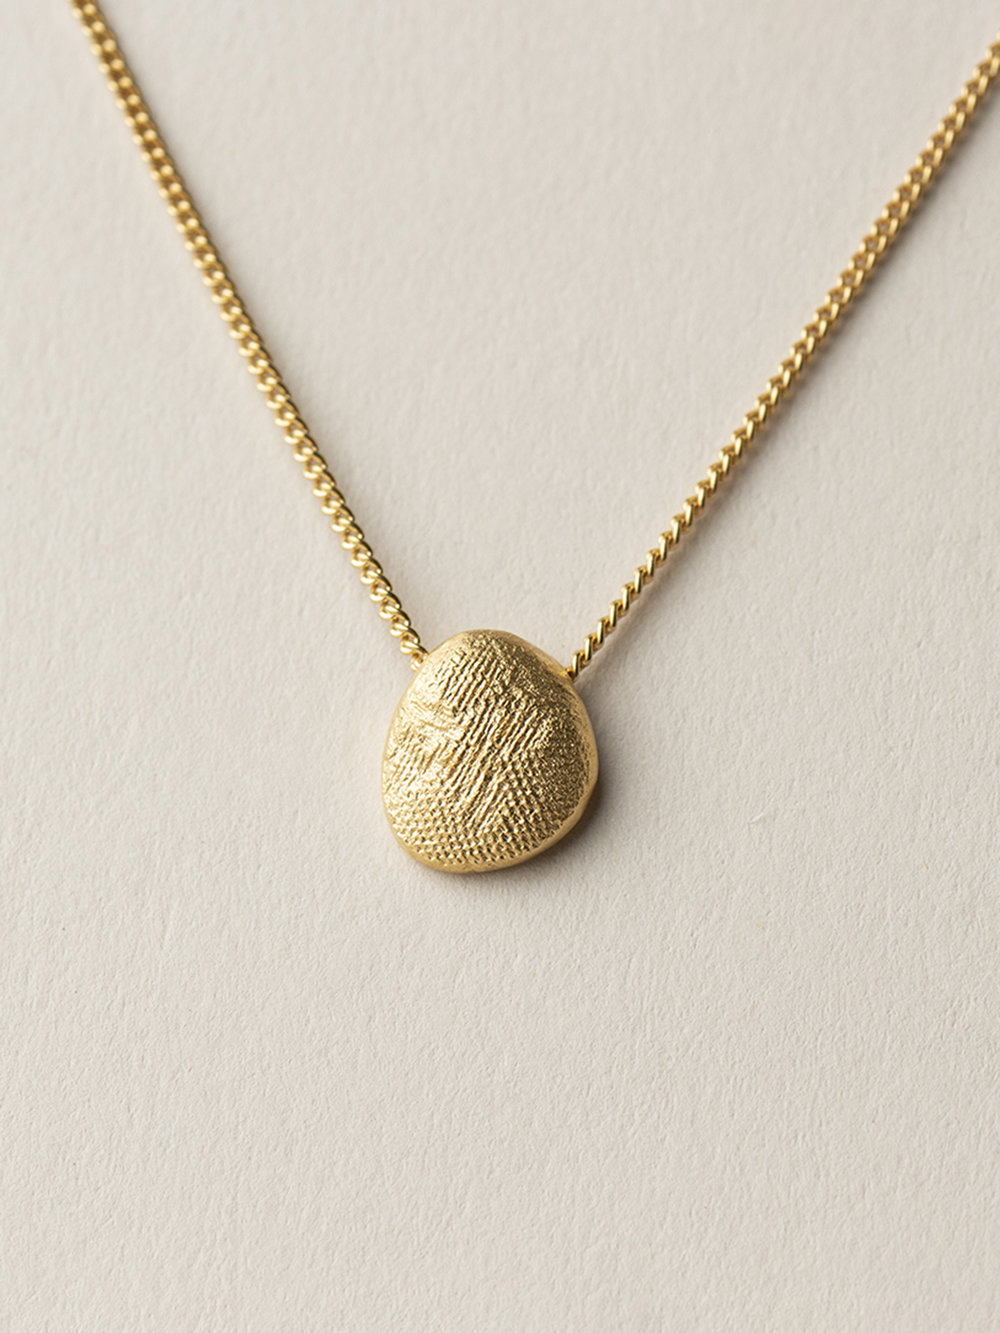 Kette Amia in goldplatiertem Silber  Amia necklace in goldpated silver